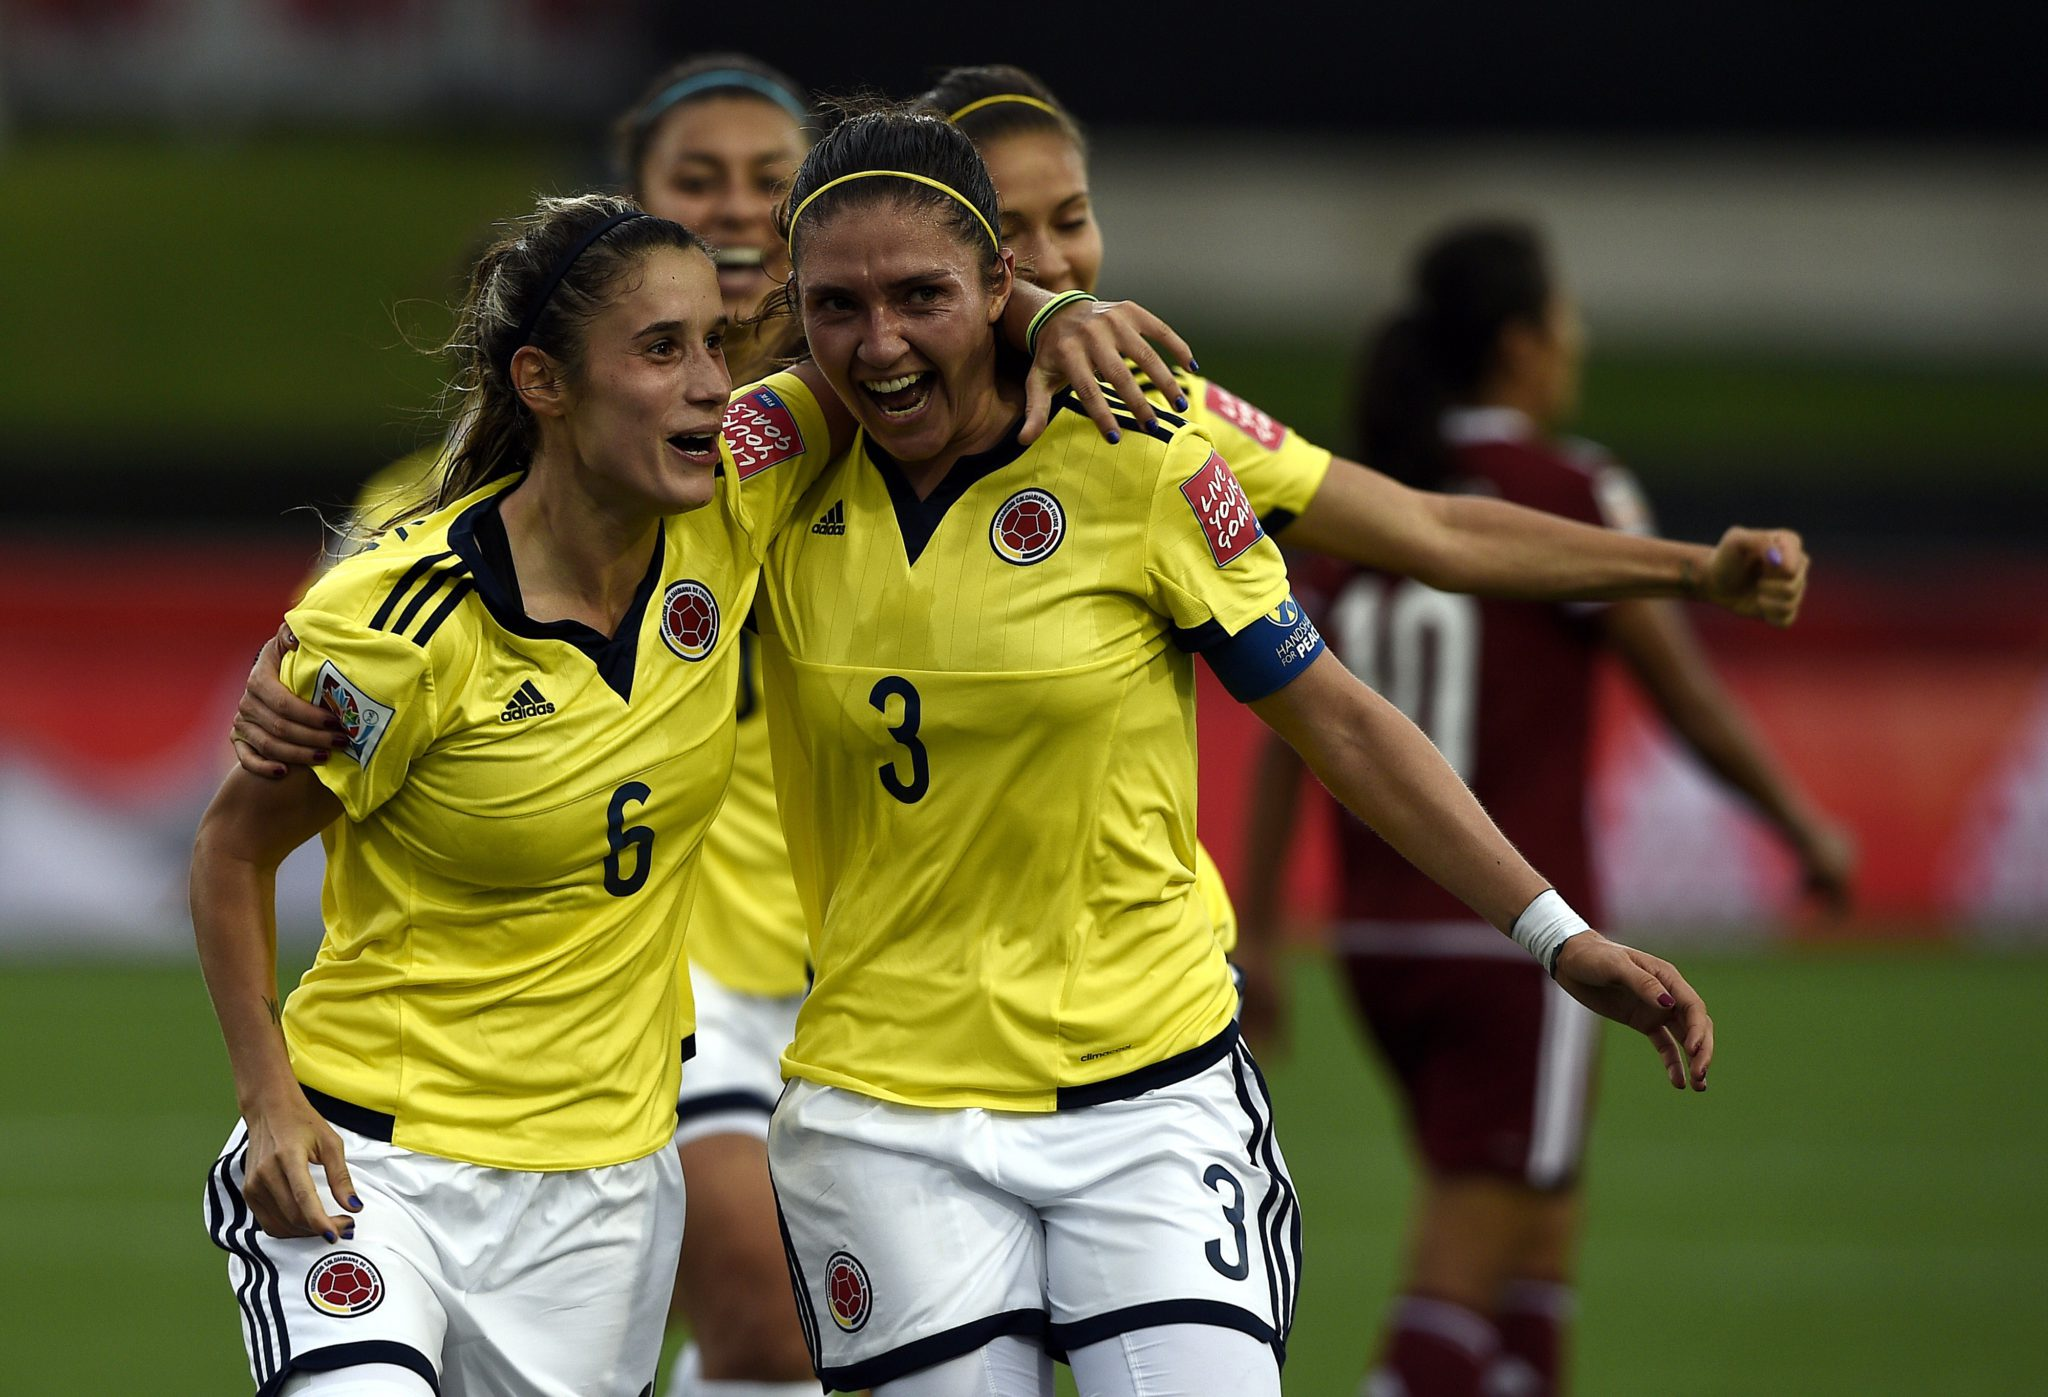 Daniela Montoya (#6) scored Colombia's first ever Women's World Cup goal. (Getty Images)